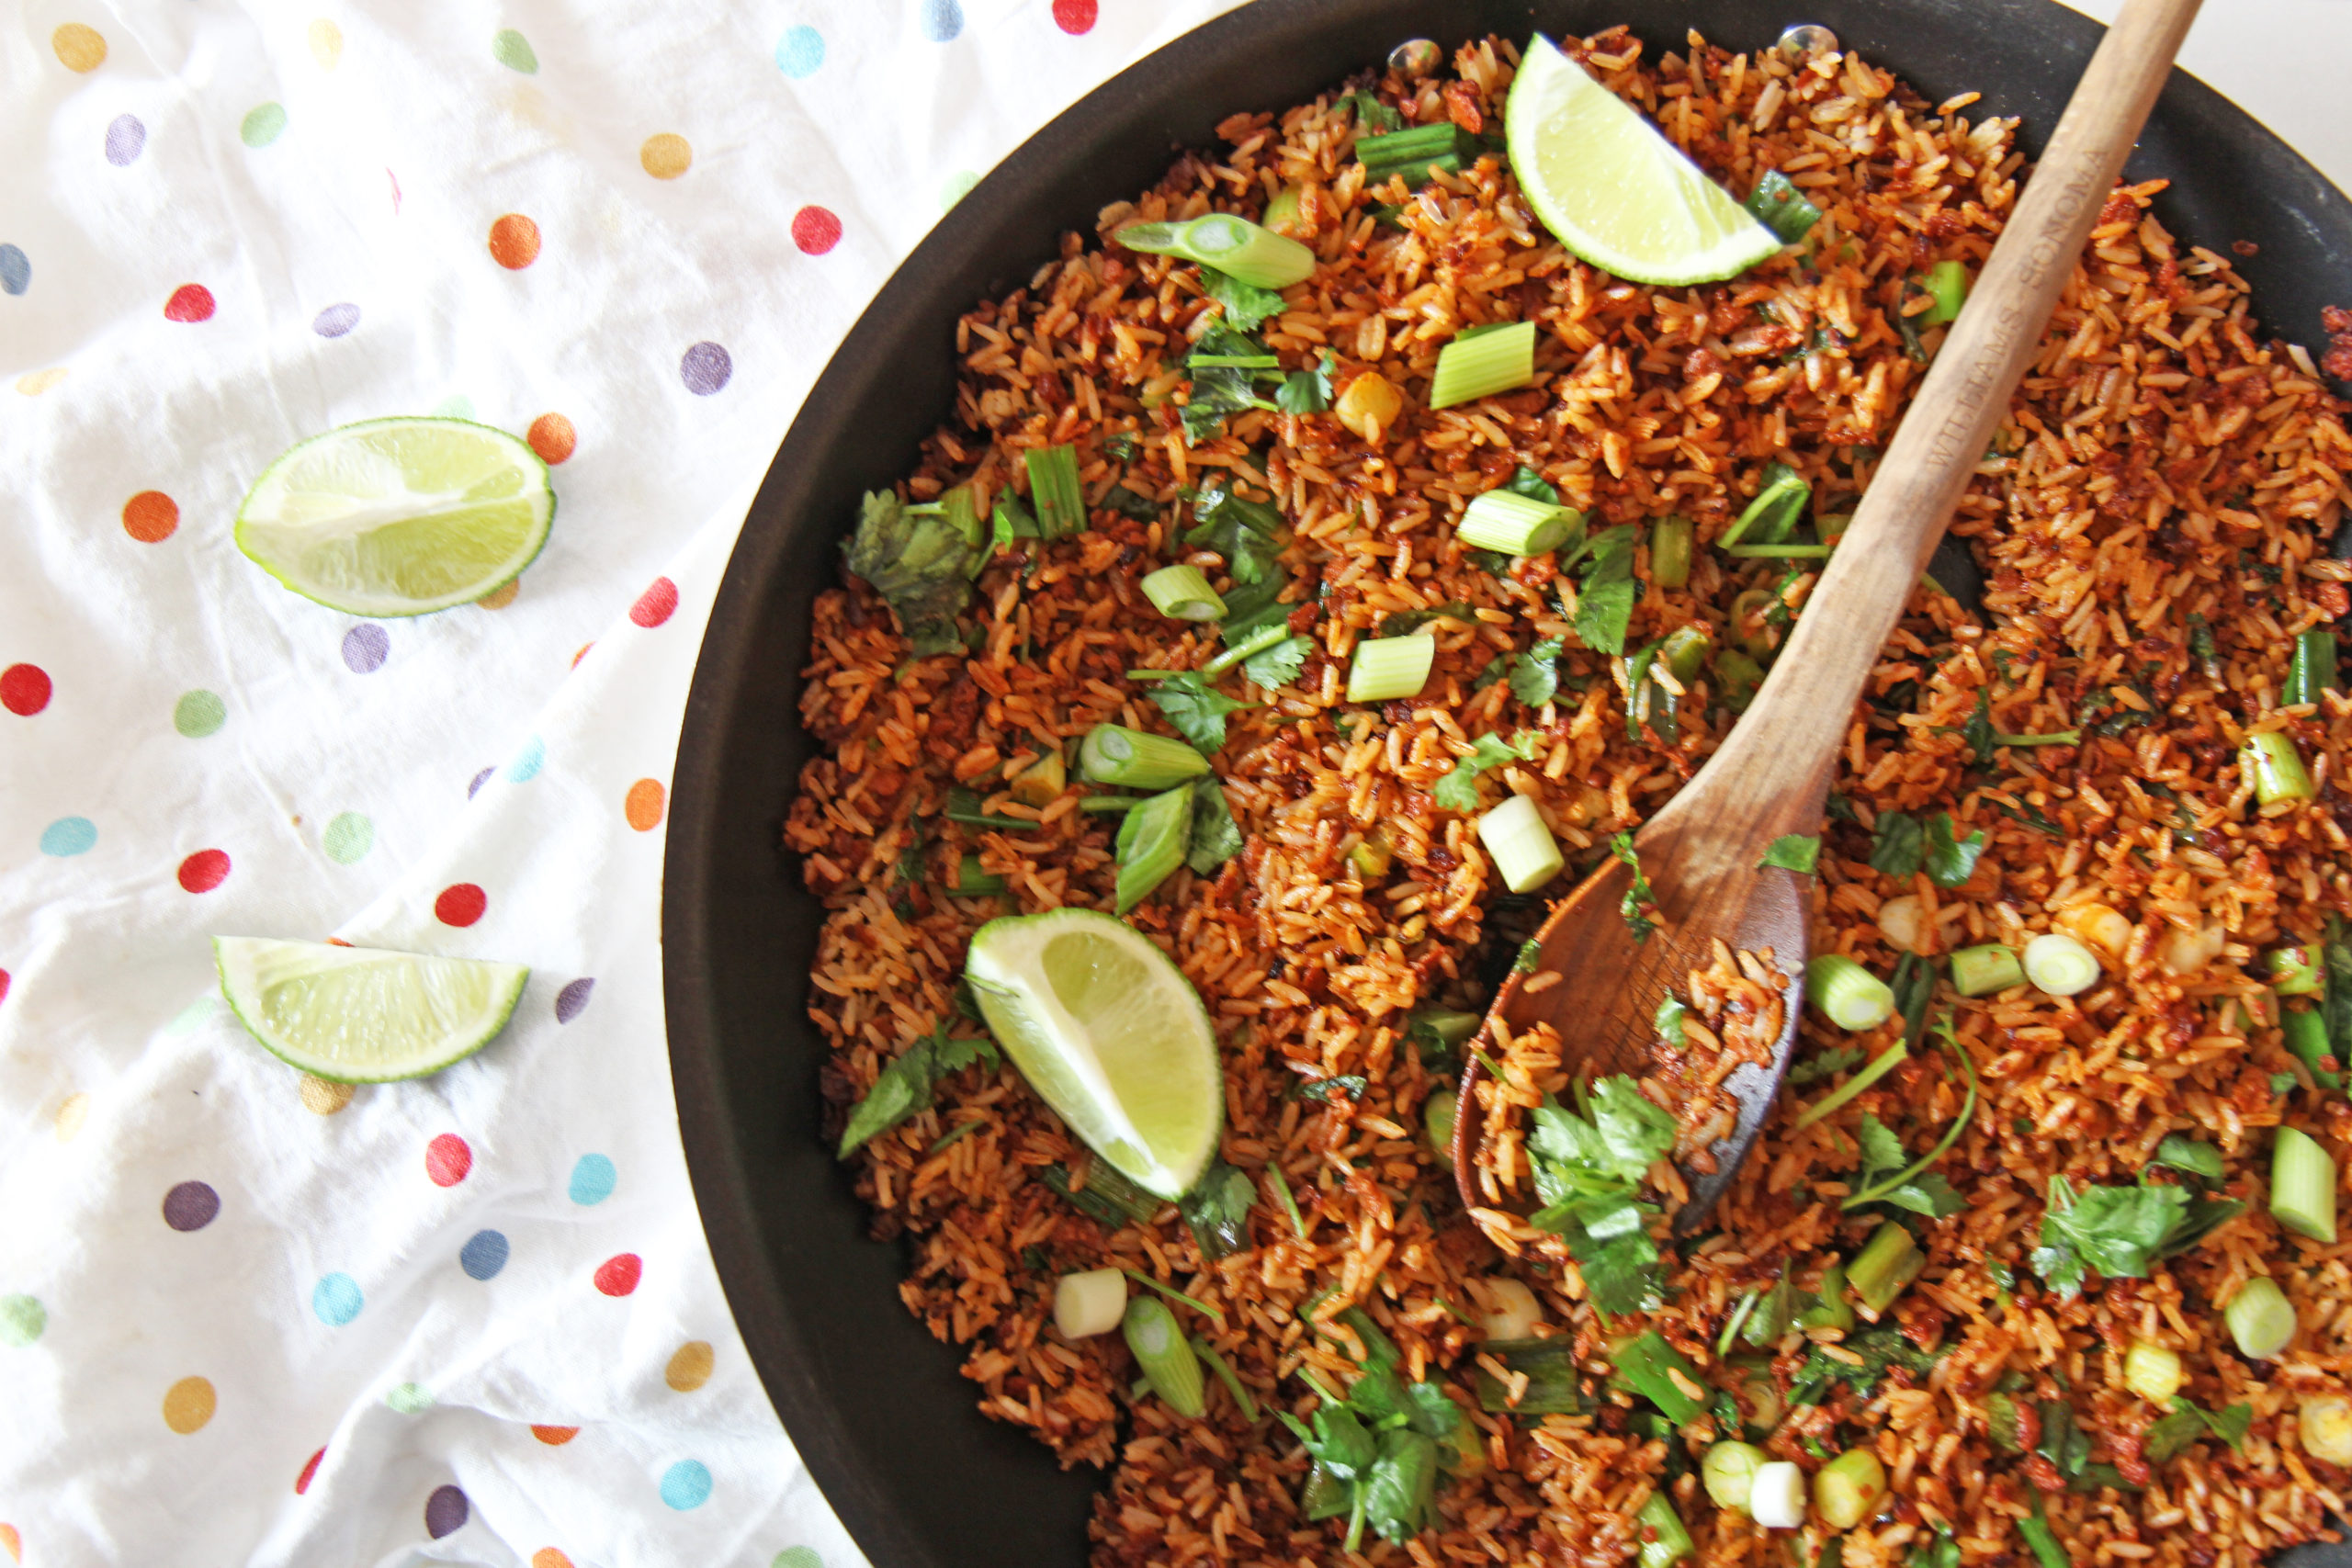 5 Ingredient Taco Fried Rice. Easy dinner for busy families. Rice, chorizo, scallions, cilantro, and lime. Also amazing leftovers. Happy Cooking! www.ChopHappy.com #friedrice #taco